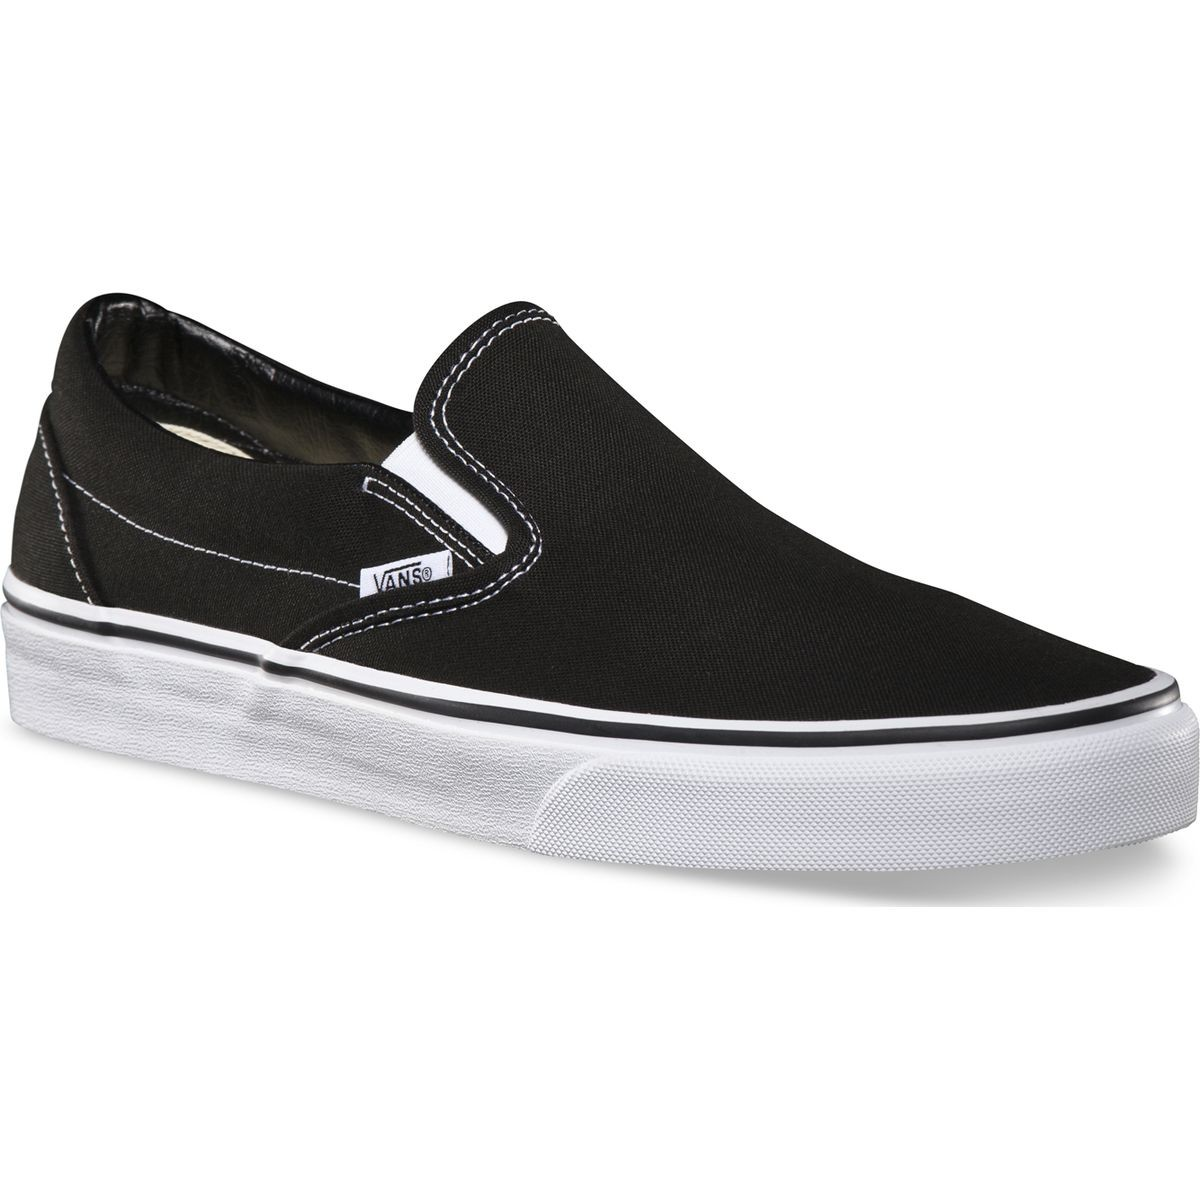 slip on trainers vans